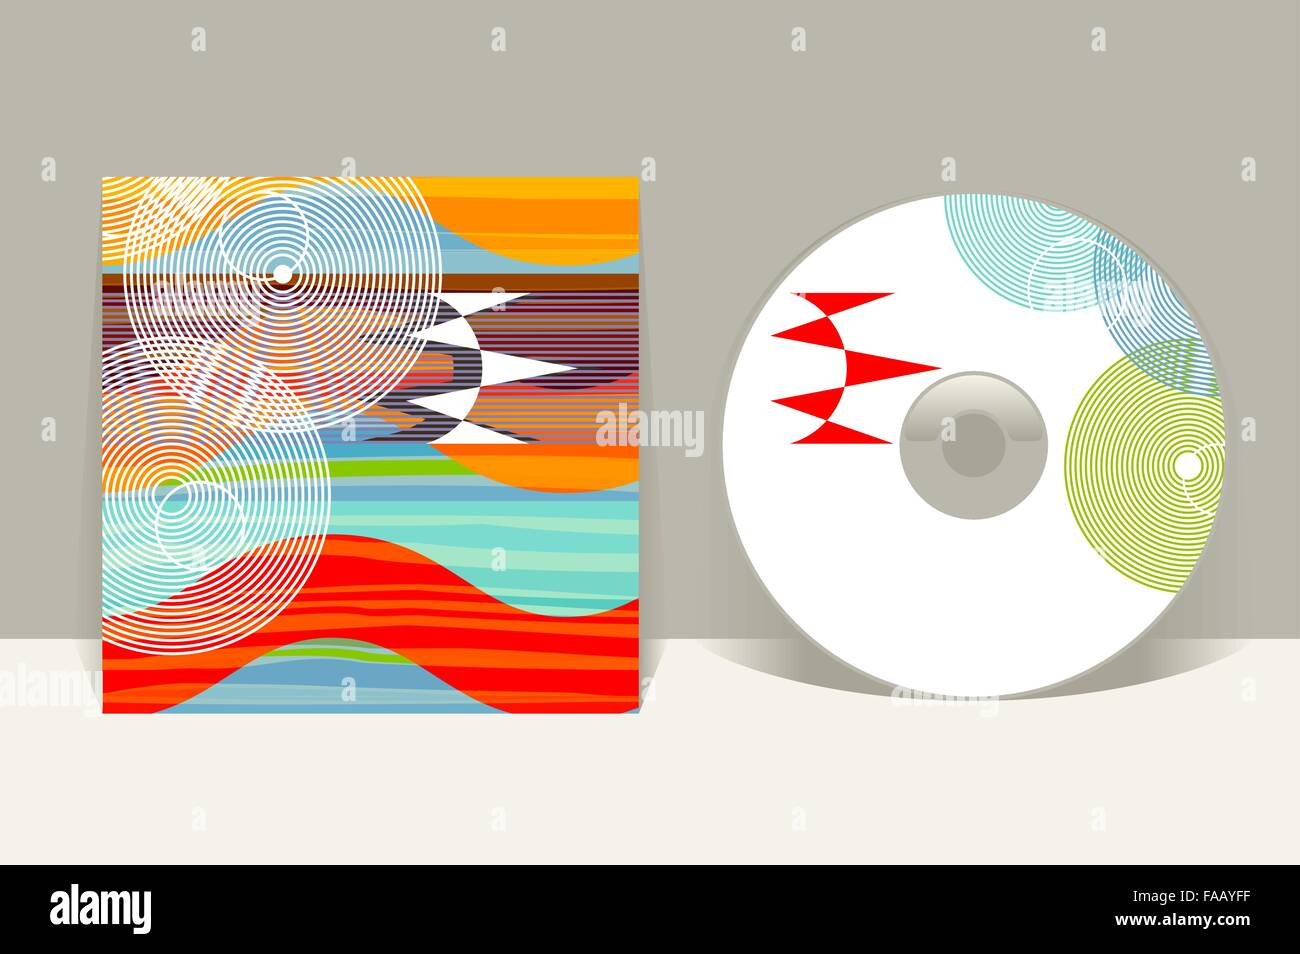 cd cover design template abstract pattern graphics editable design